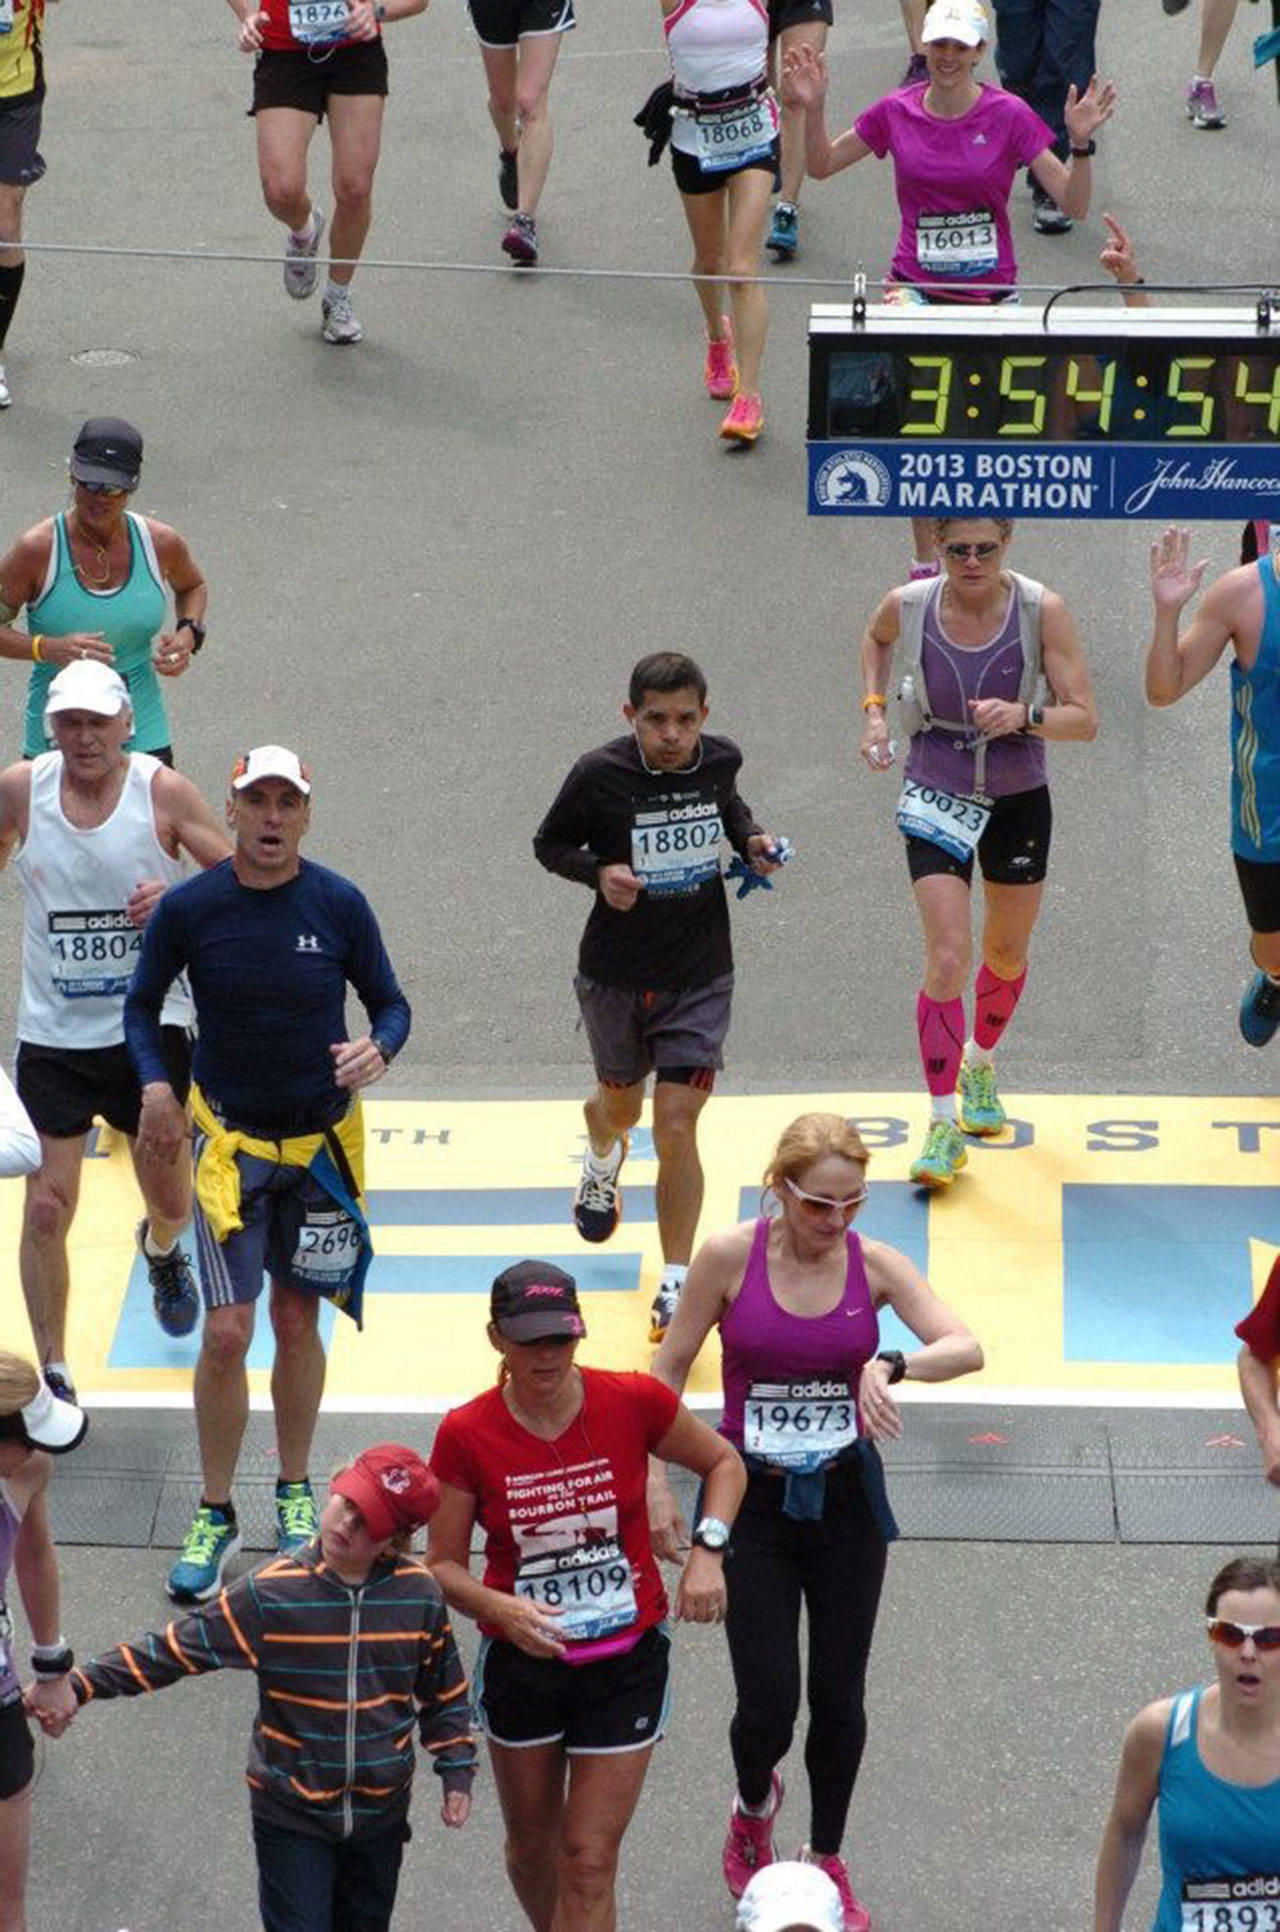 Mendoza (18802) crosses the finish line of the Boston Marathon. (Submitted photo)